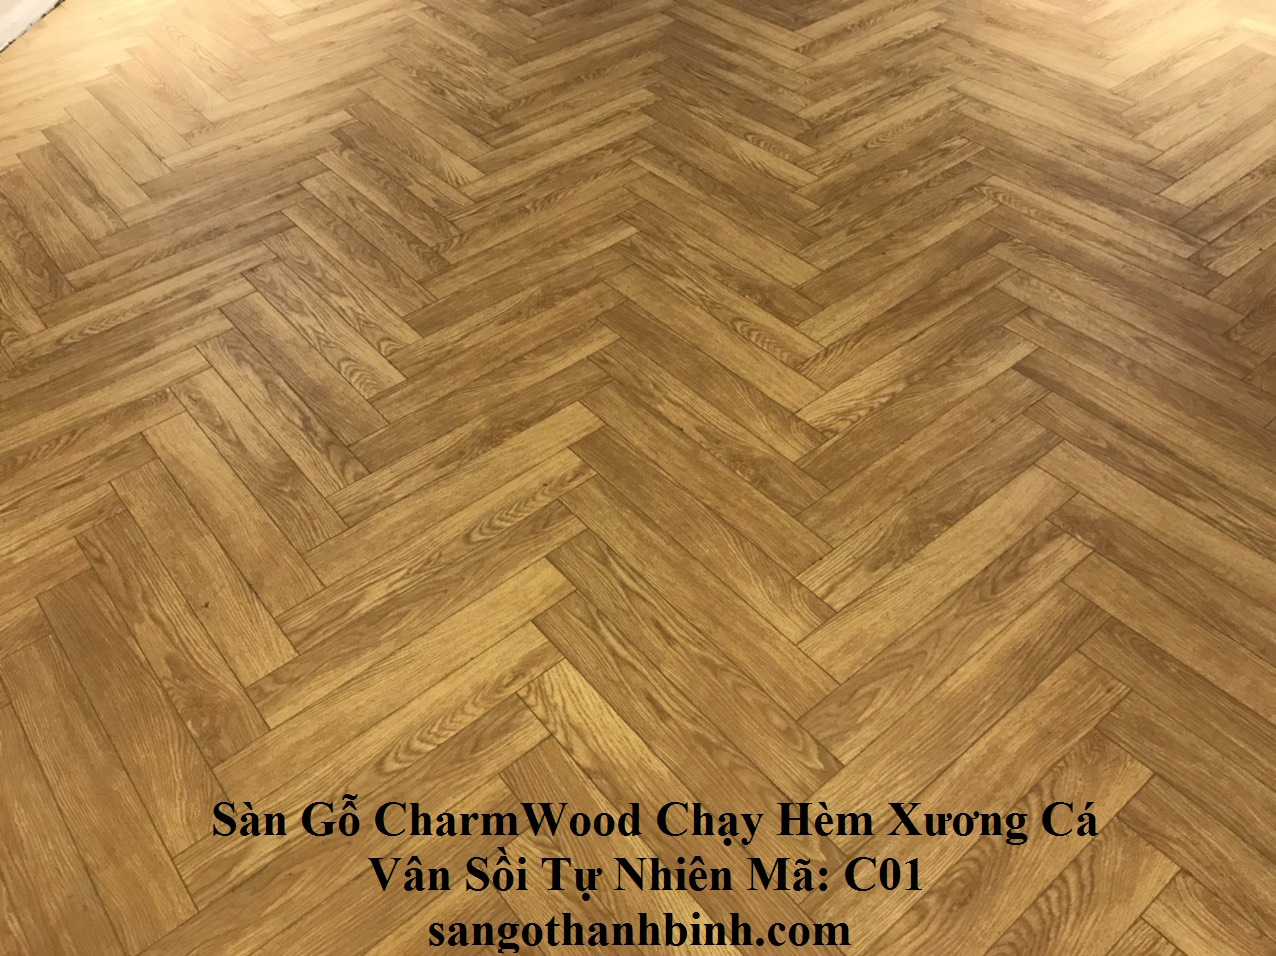 Charm Wood Aqua 12mm - C01 : Vân Sồi